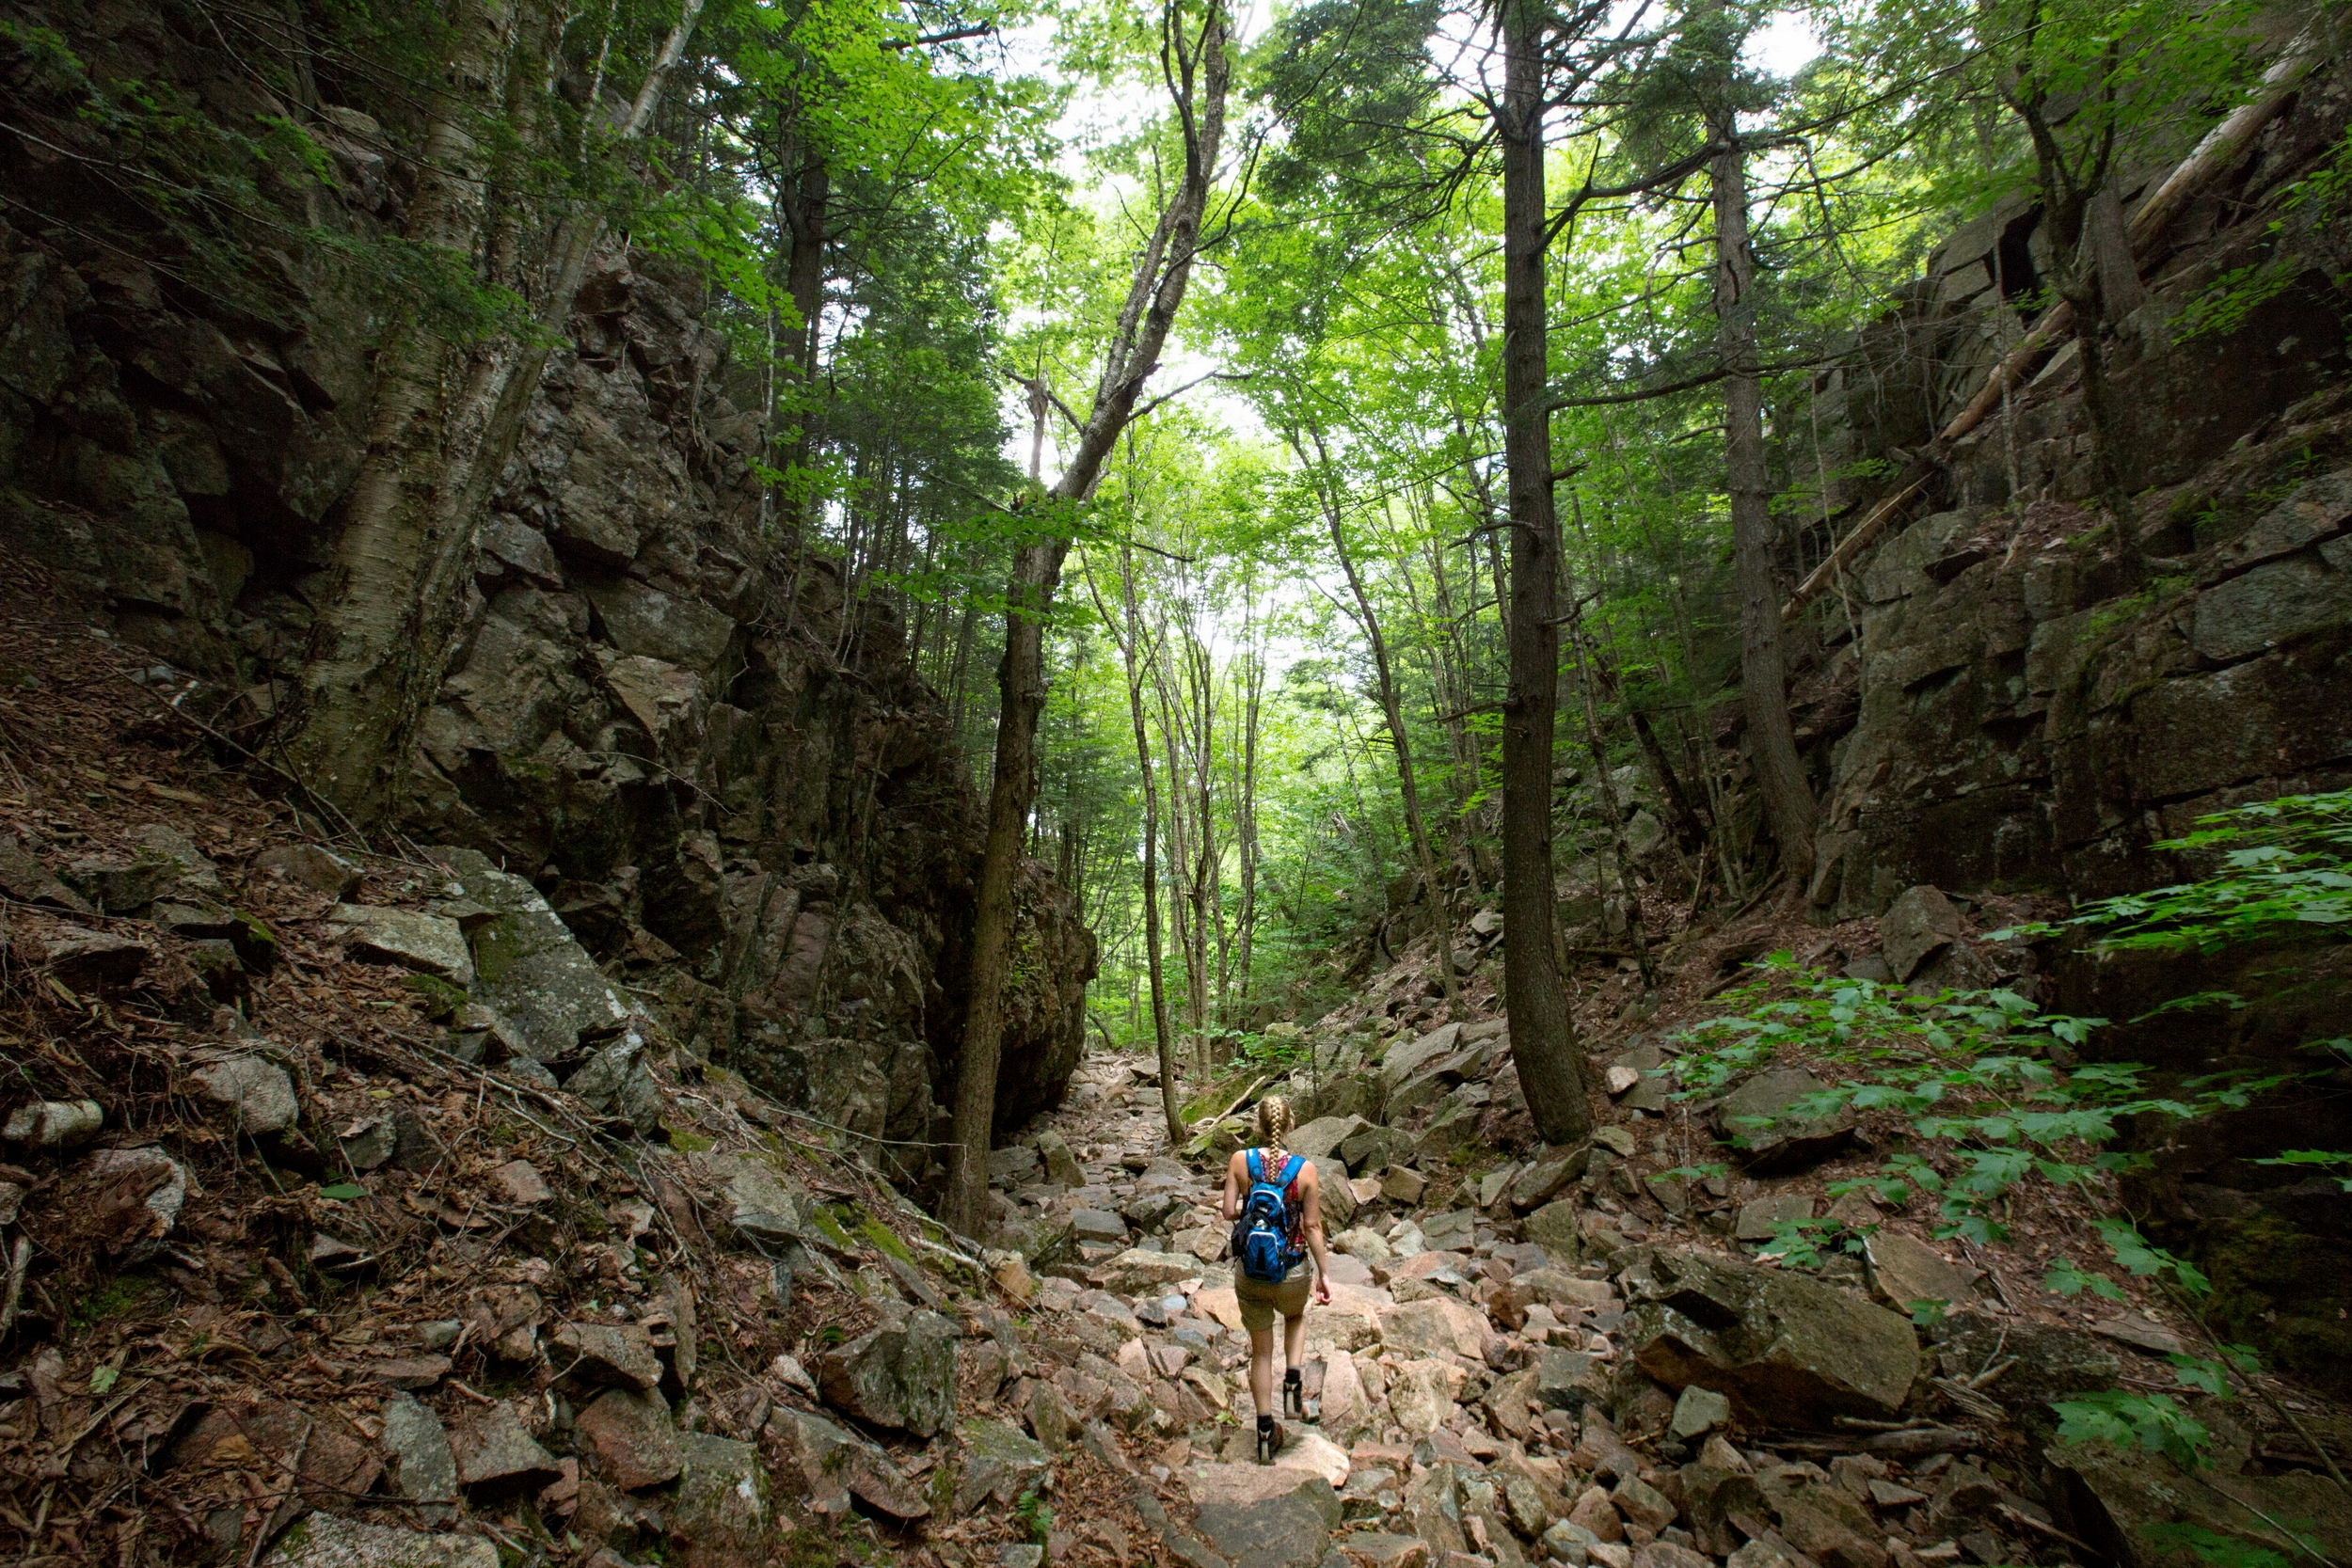 ACADIA NATIONAL PARK, MOUNT DESERT ISLAND, MAINE -- 07/14/2016 --Bangor Daily News Outdoors reporter Aislinn Sarnacki makes her way down the Gorge Path in Acadia National Park while working on one of her one-minute-hike videos,winding her way between Cadillac and Dorr Mountain. (Micky Bedell  BDN)